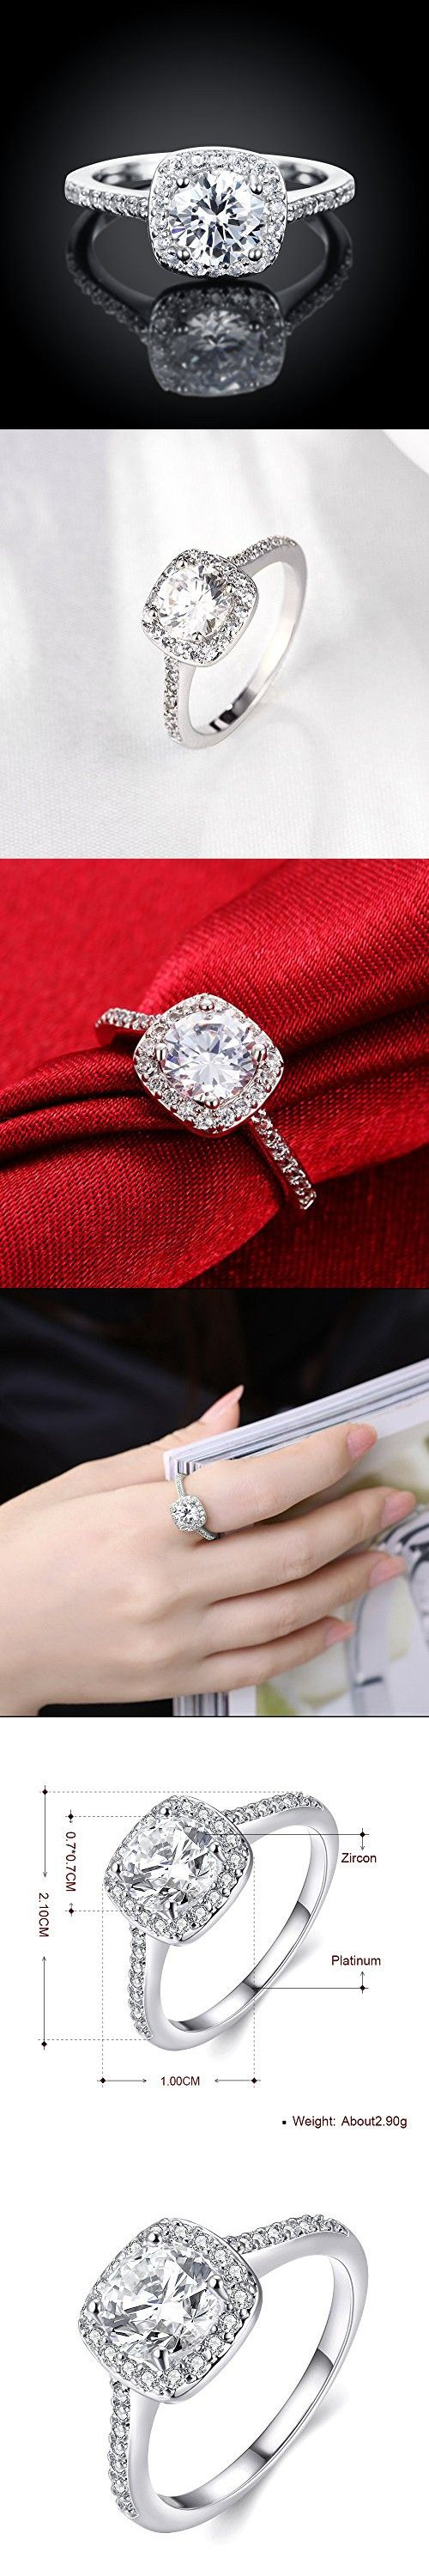 Naivo Gold Plated Crystal Stone Halo Setting Pave Band Engagement Ring Women's (1.90 carats) (White Gold, 5)